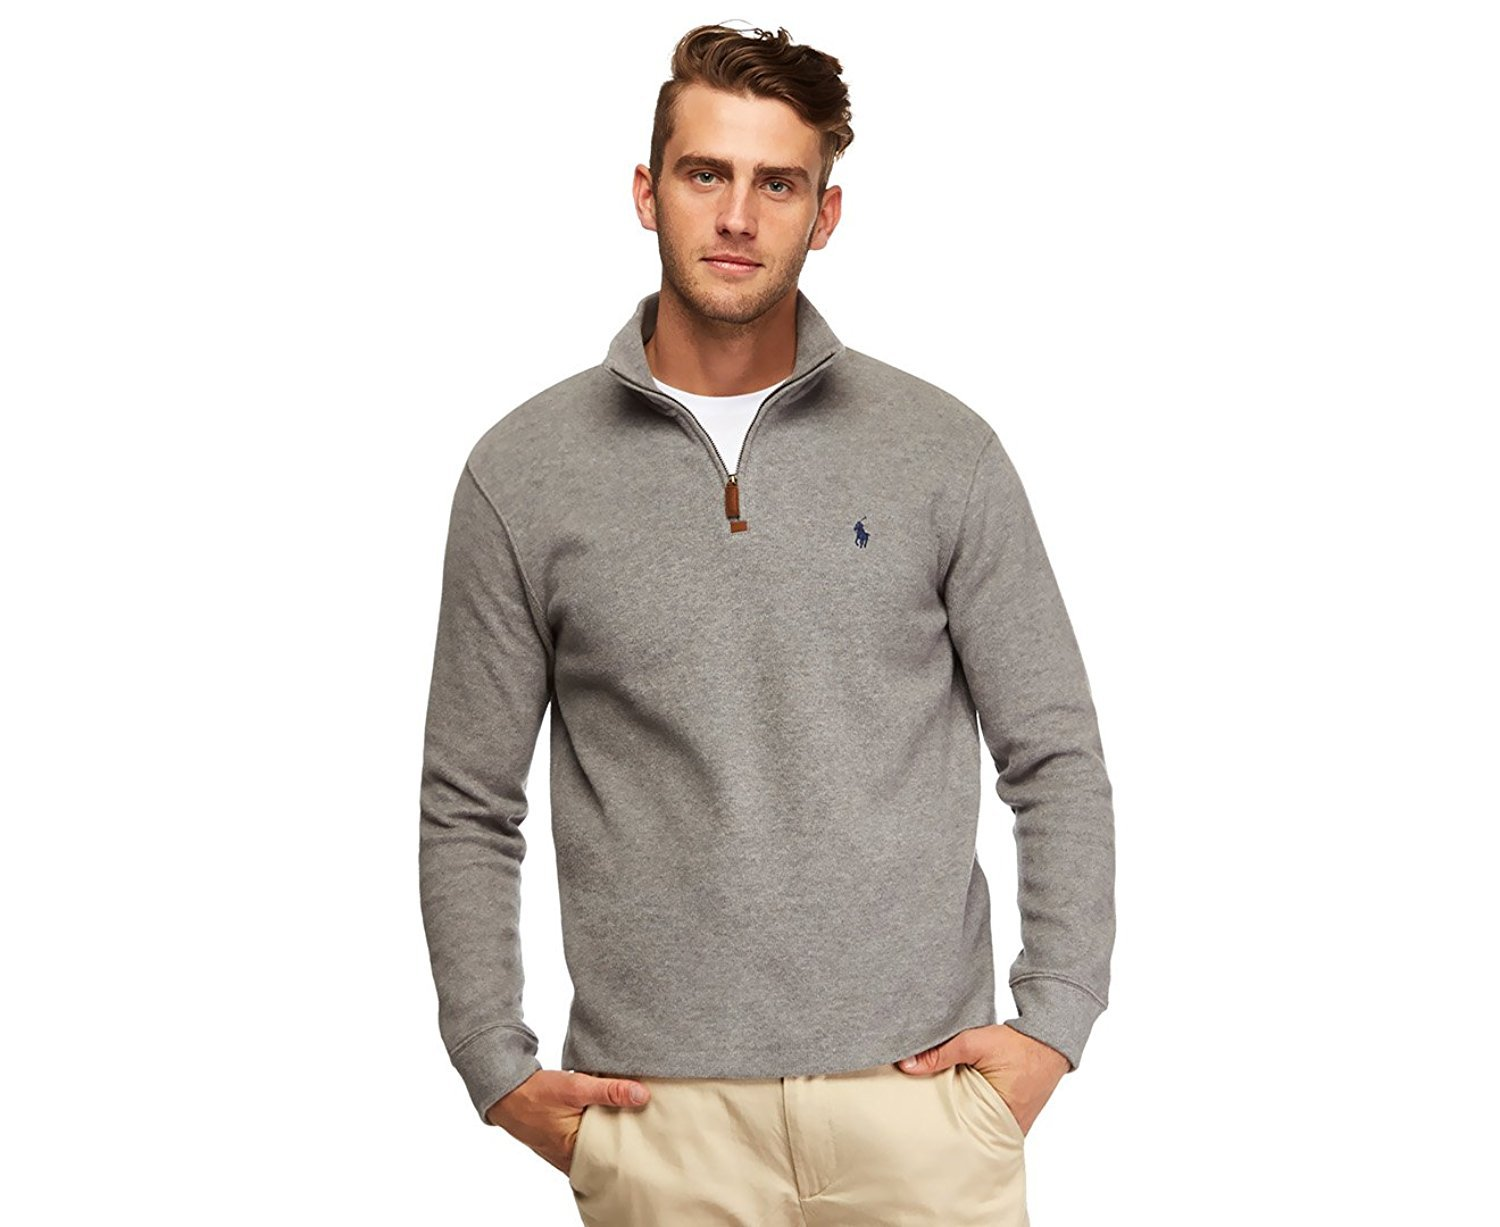 RALPH LAUREN Polo Men's Half Zip French Rib Cotton Sweater (X-Large, Light Grey)